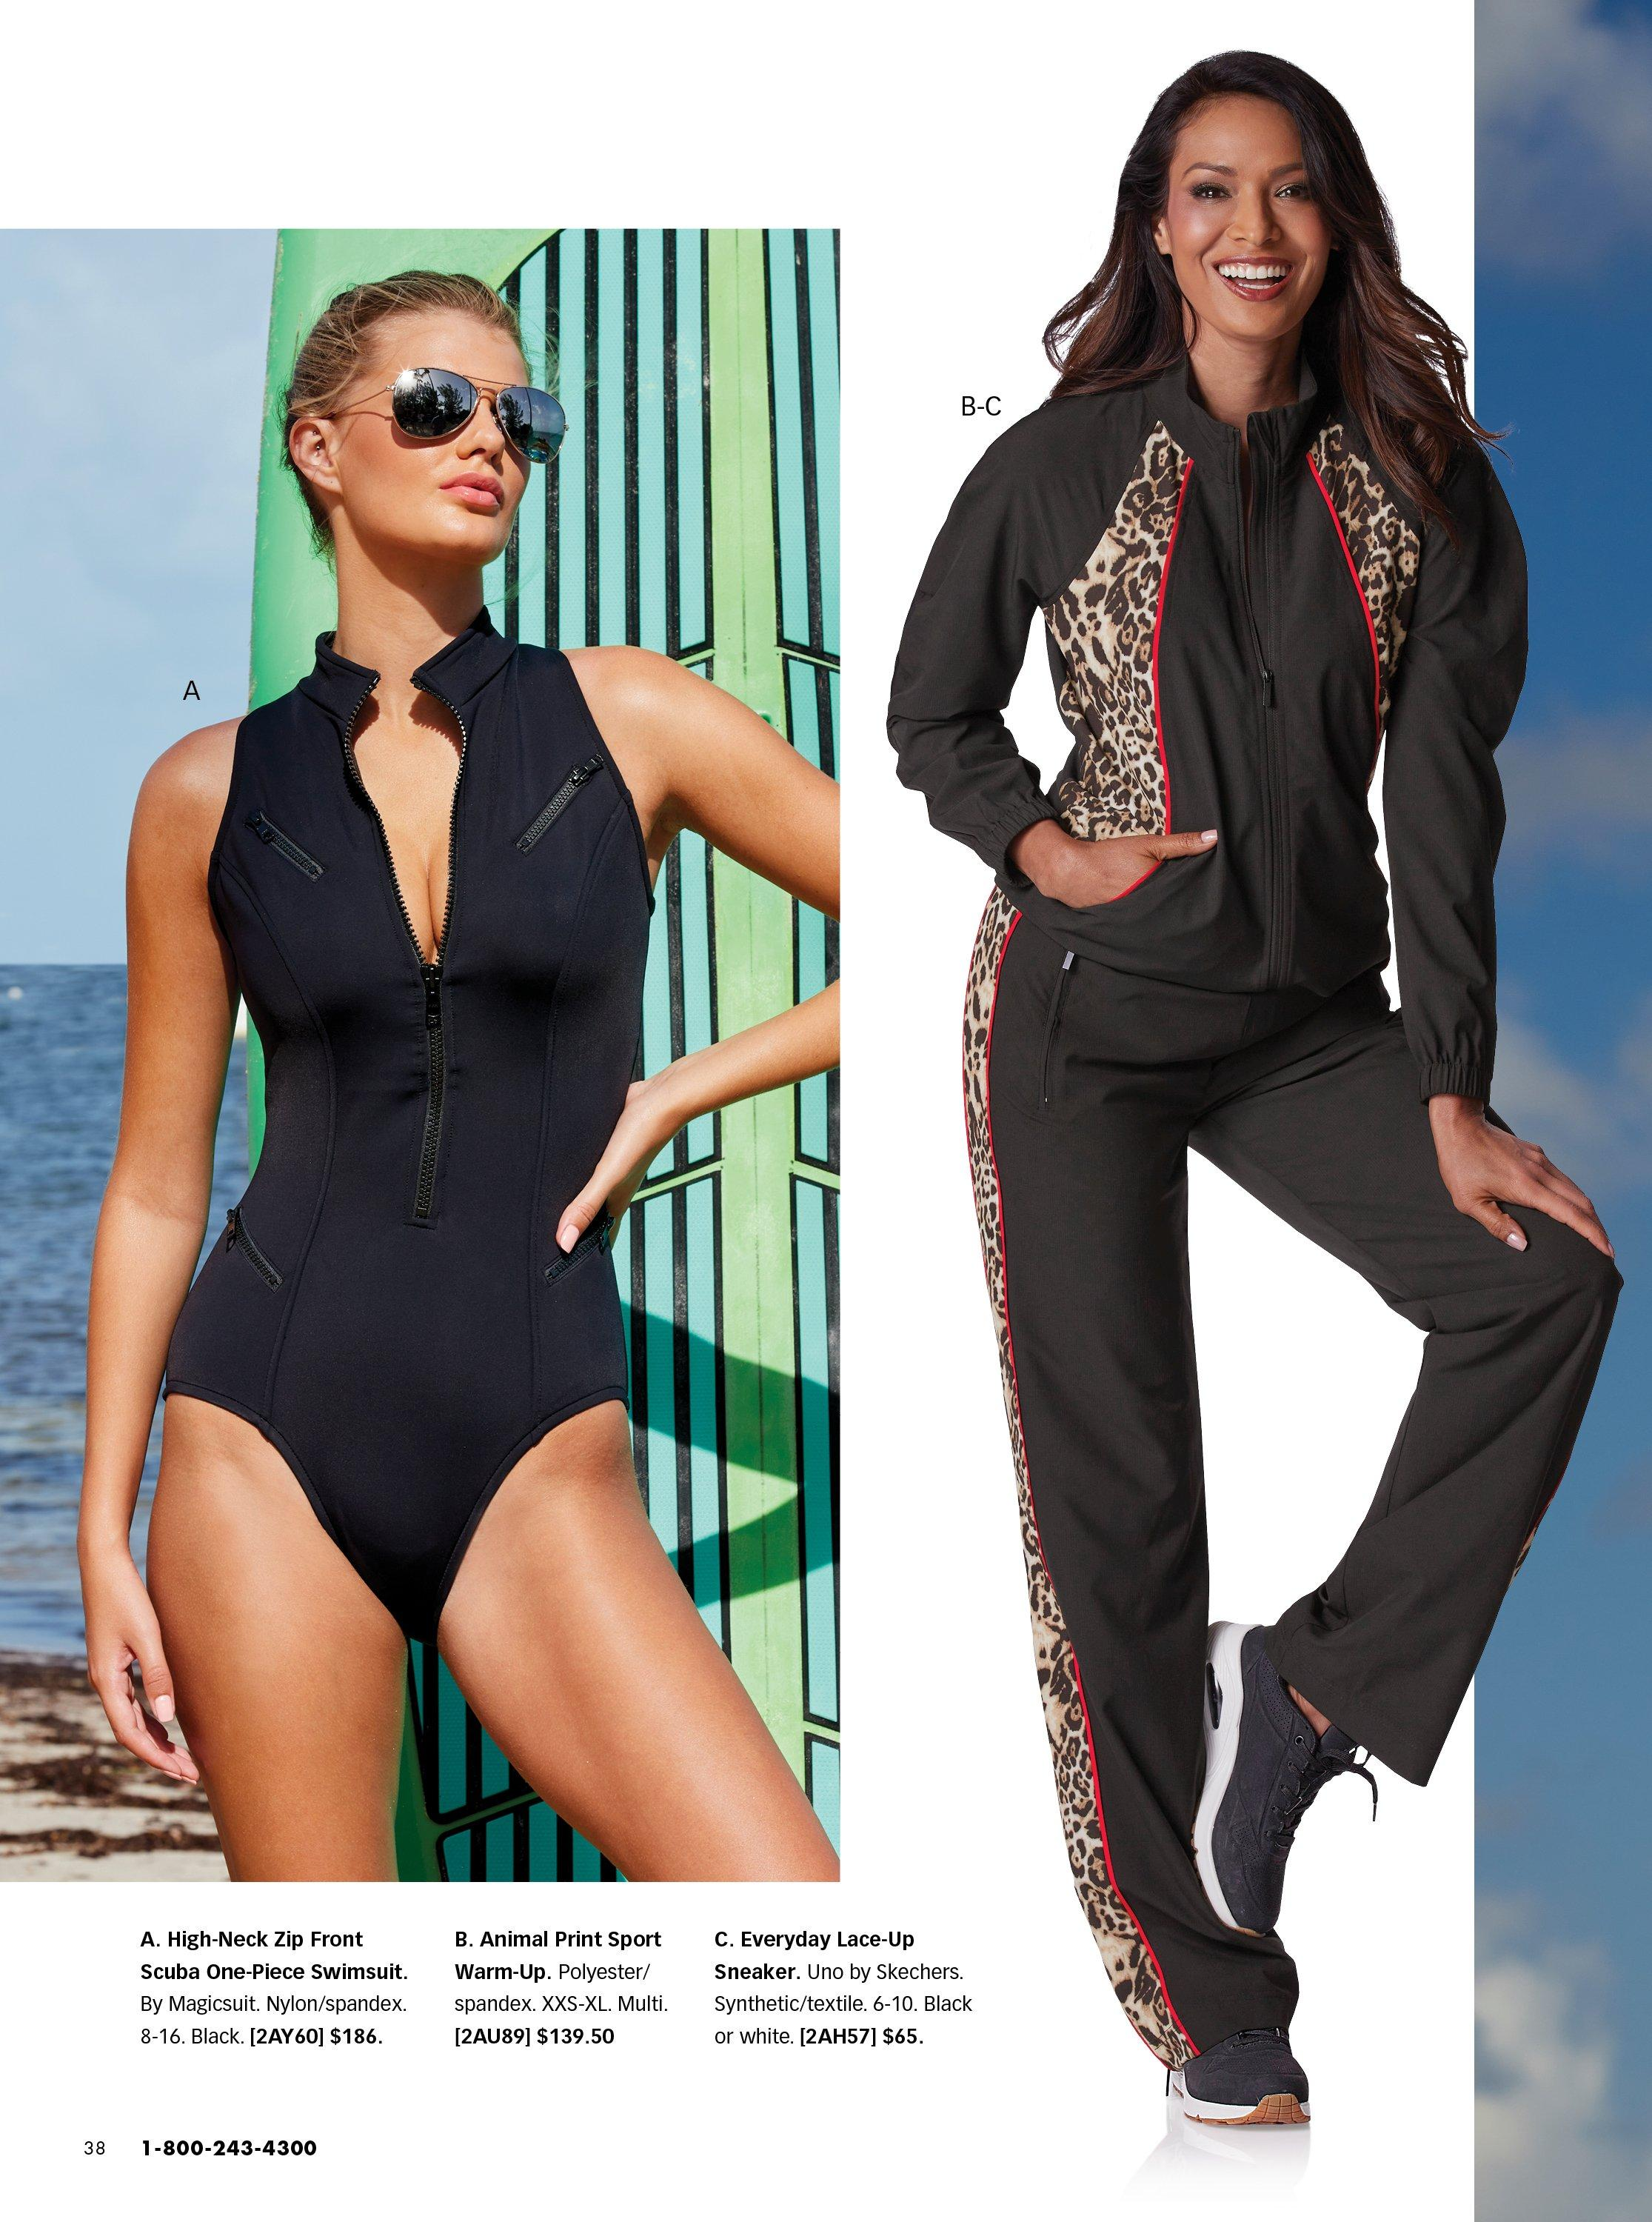 left model wearing a black scuba zip front one-piece swimsuit. right model wearing a black and leopard print two-piece warm up and black sneakers.